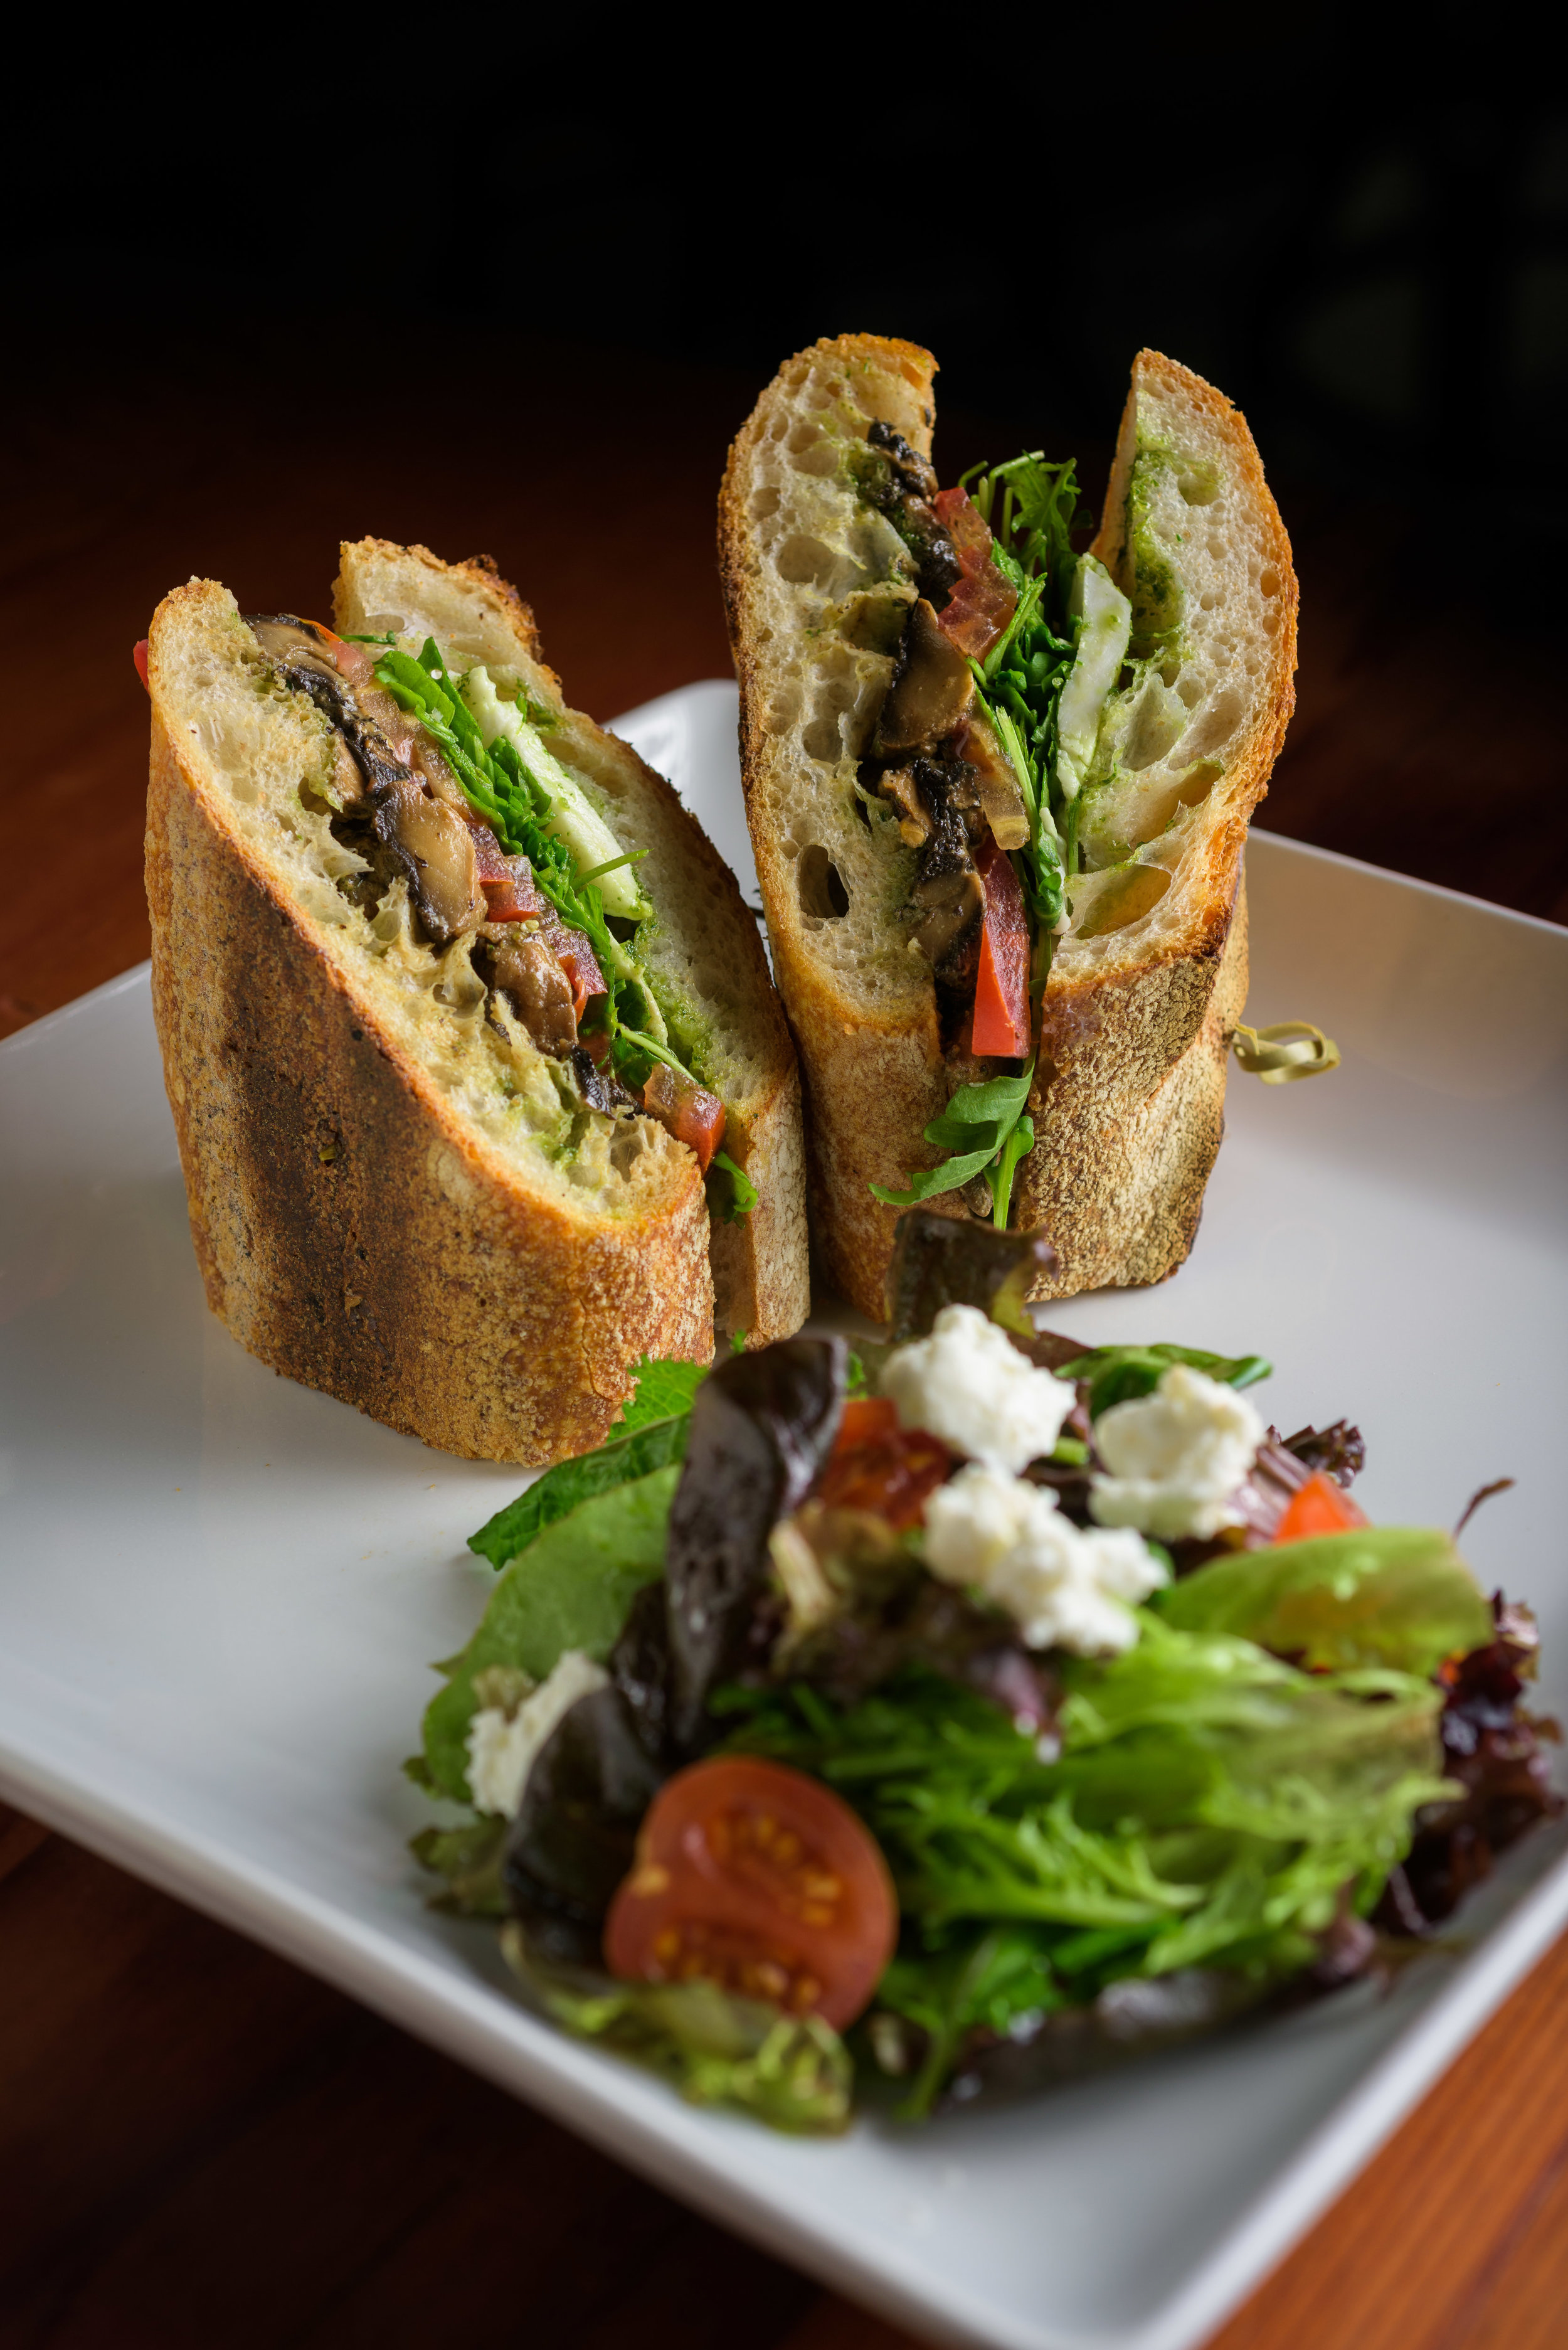 two half sandwiches on a plate with salad - Cupertino food photography - RootStock Wine Bar - photos by Bay Area commercial photographer Chris Schmauch